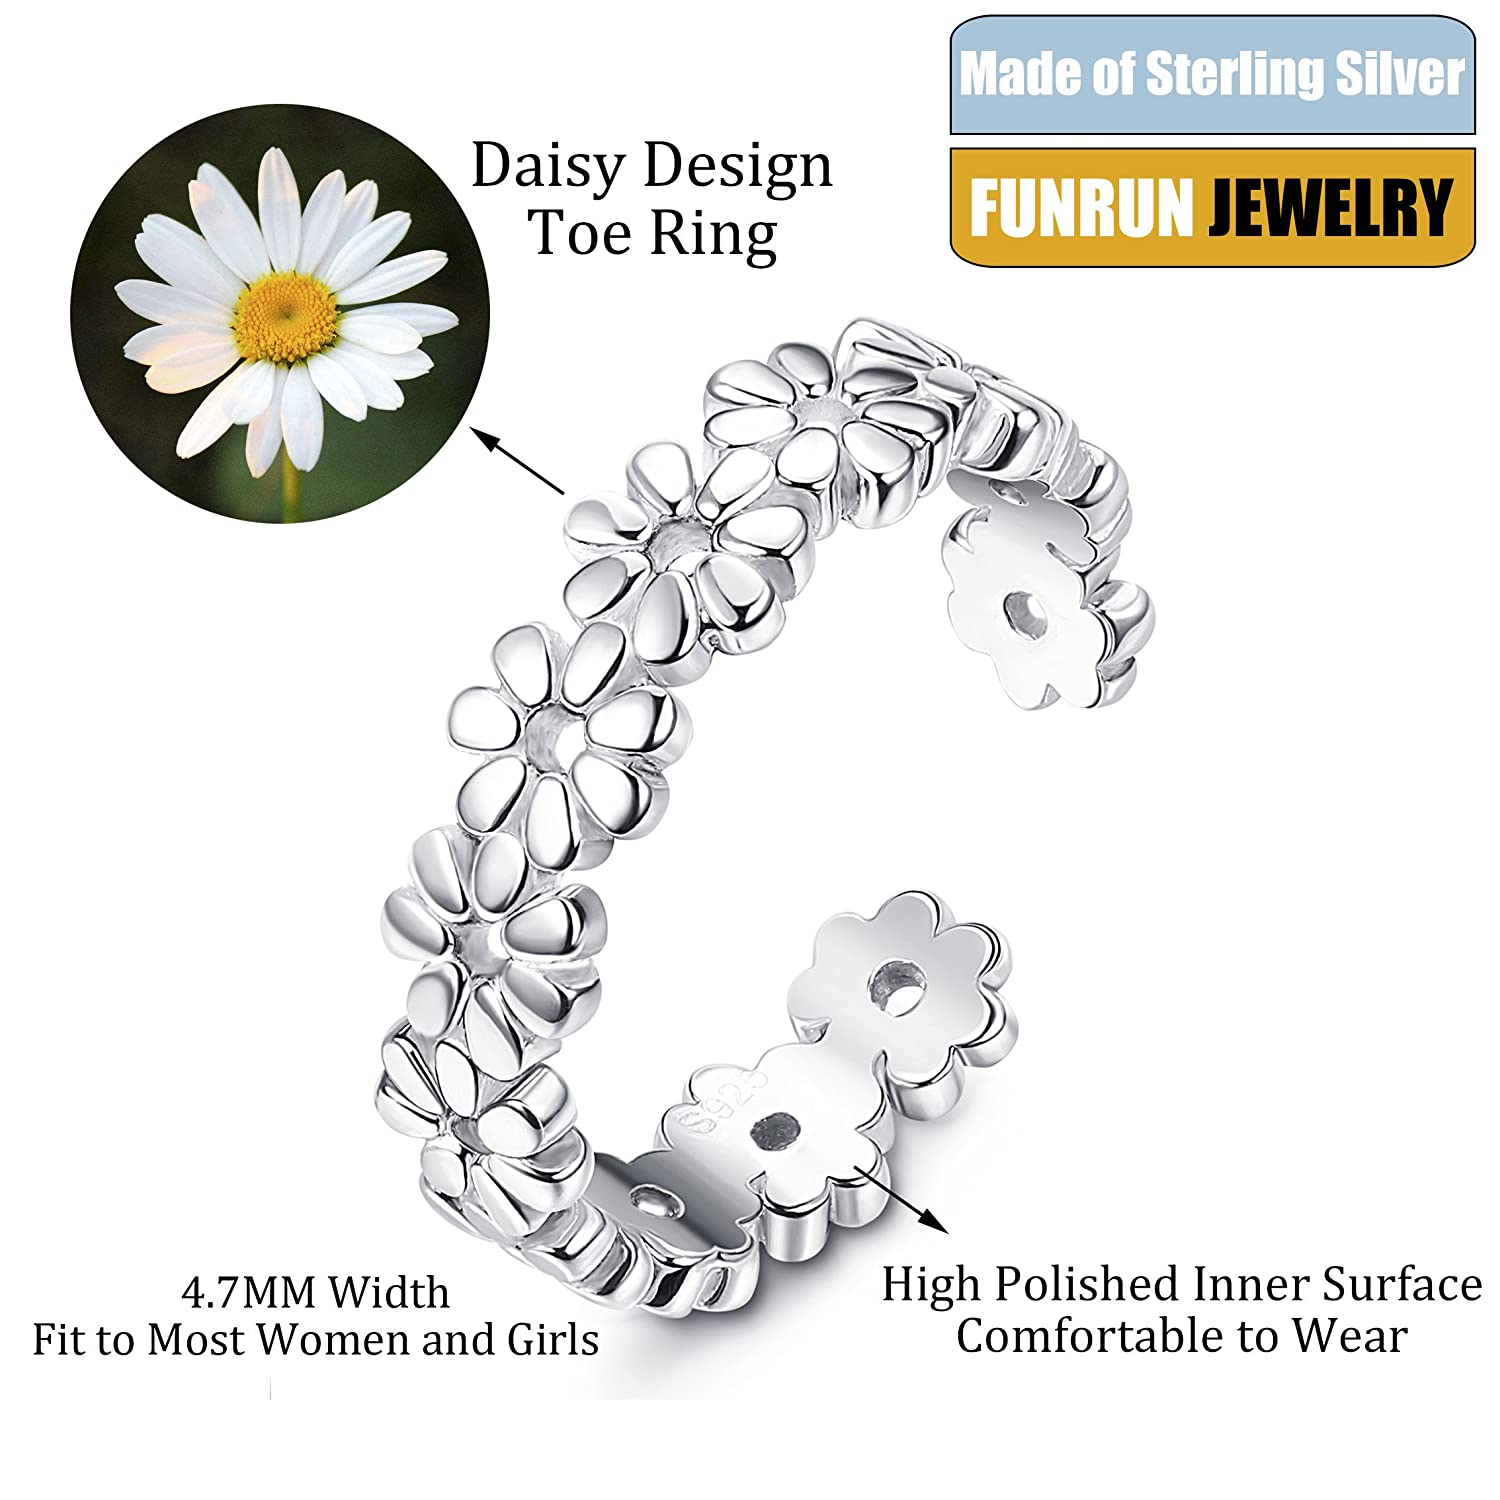 Funrun jewelry sterling silver toe rings for women girls foot funrun jewelry sterling silver toe rings for women girls foot jewelry hawaiian beach flower ring adjustable izmirmasajfo